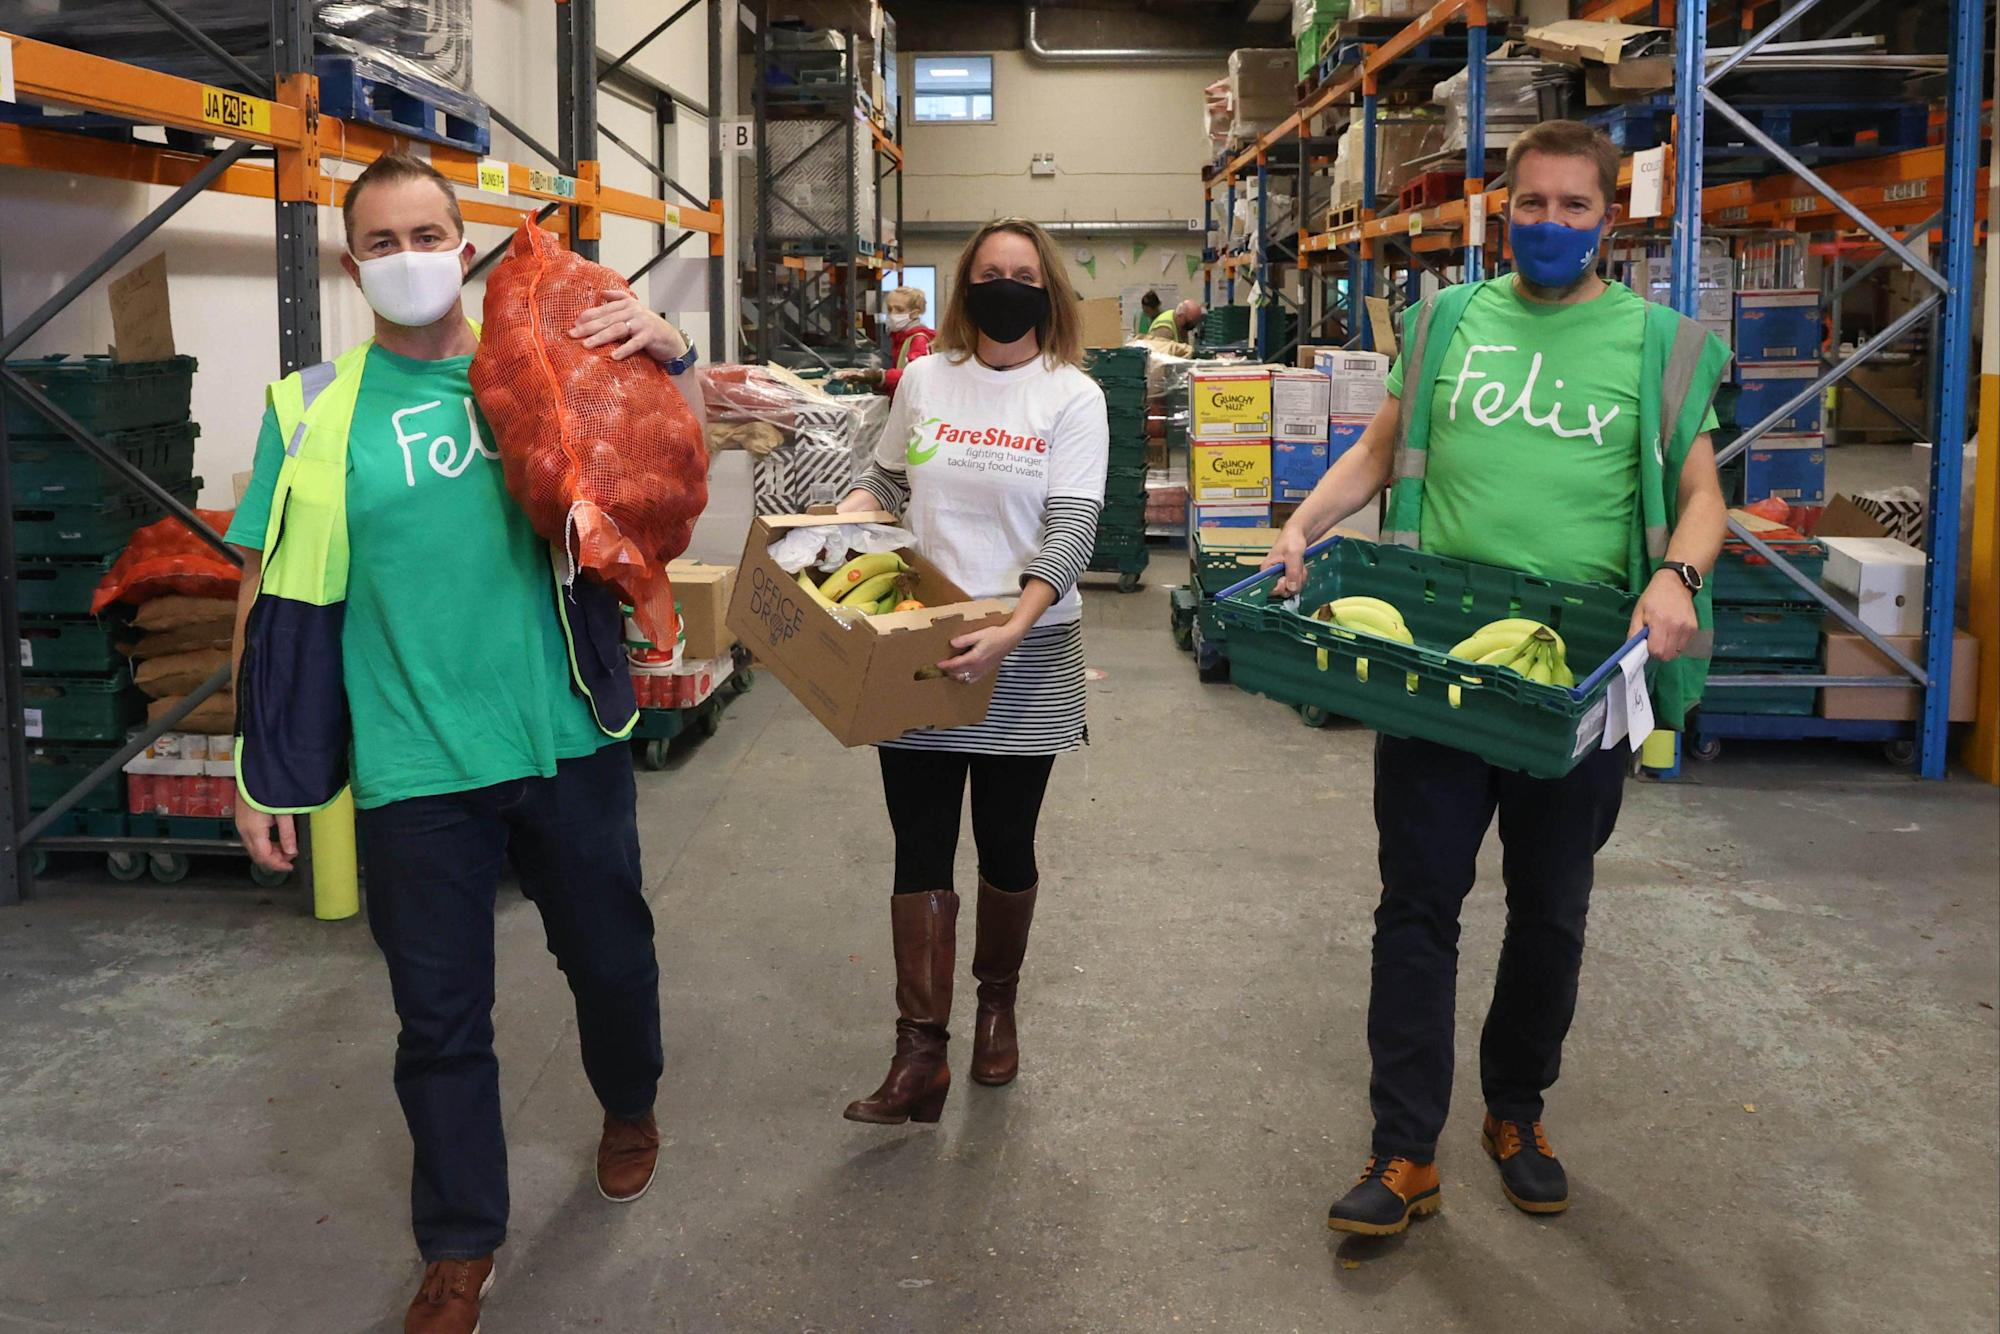 Food for London Now: Felix Project takes over south London depot of Marcus Rashford charity FareShare